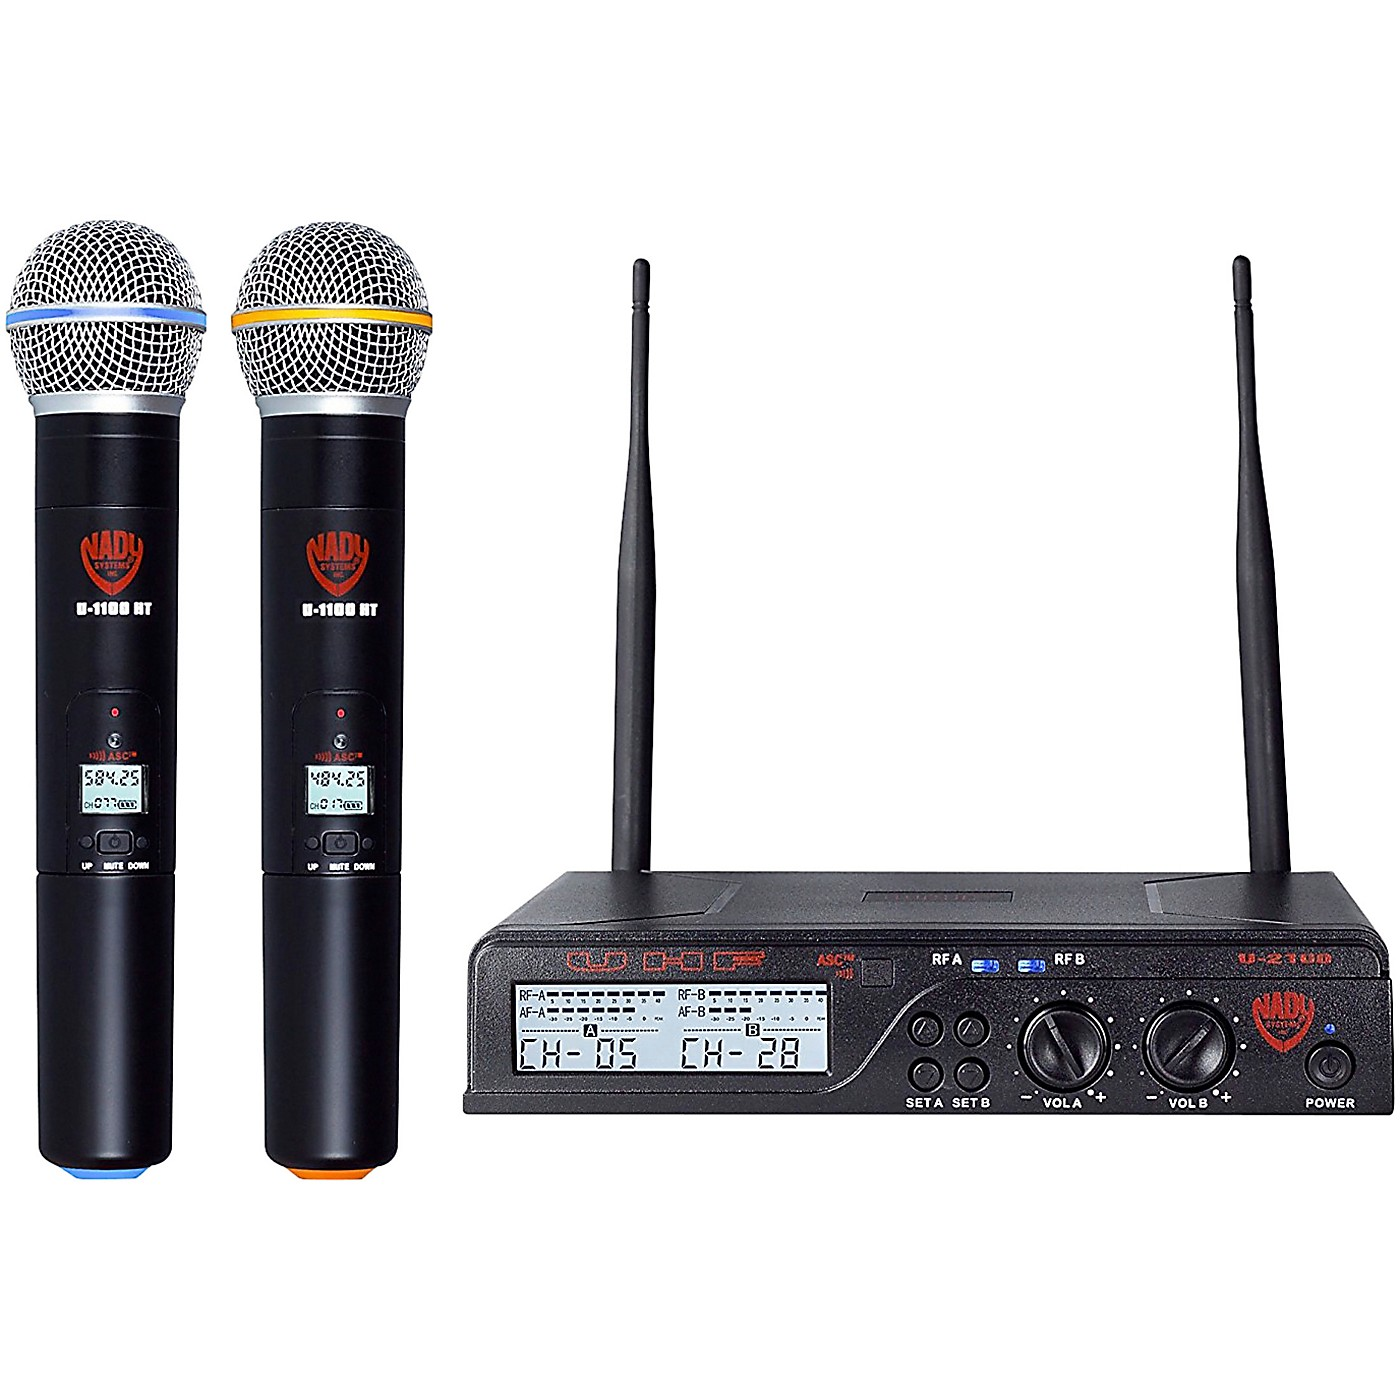 Nady U-2100 HT - Dual 100 Channel UHF Handheld Wireless Microphone System thumbnail